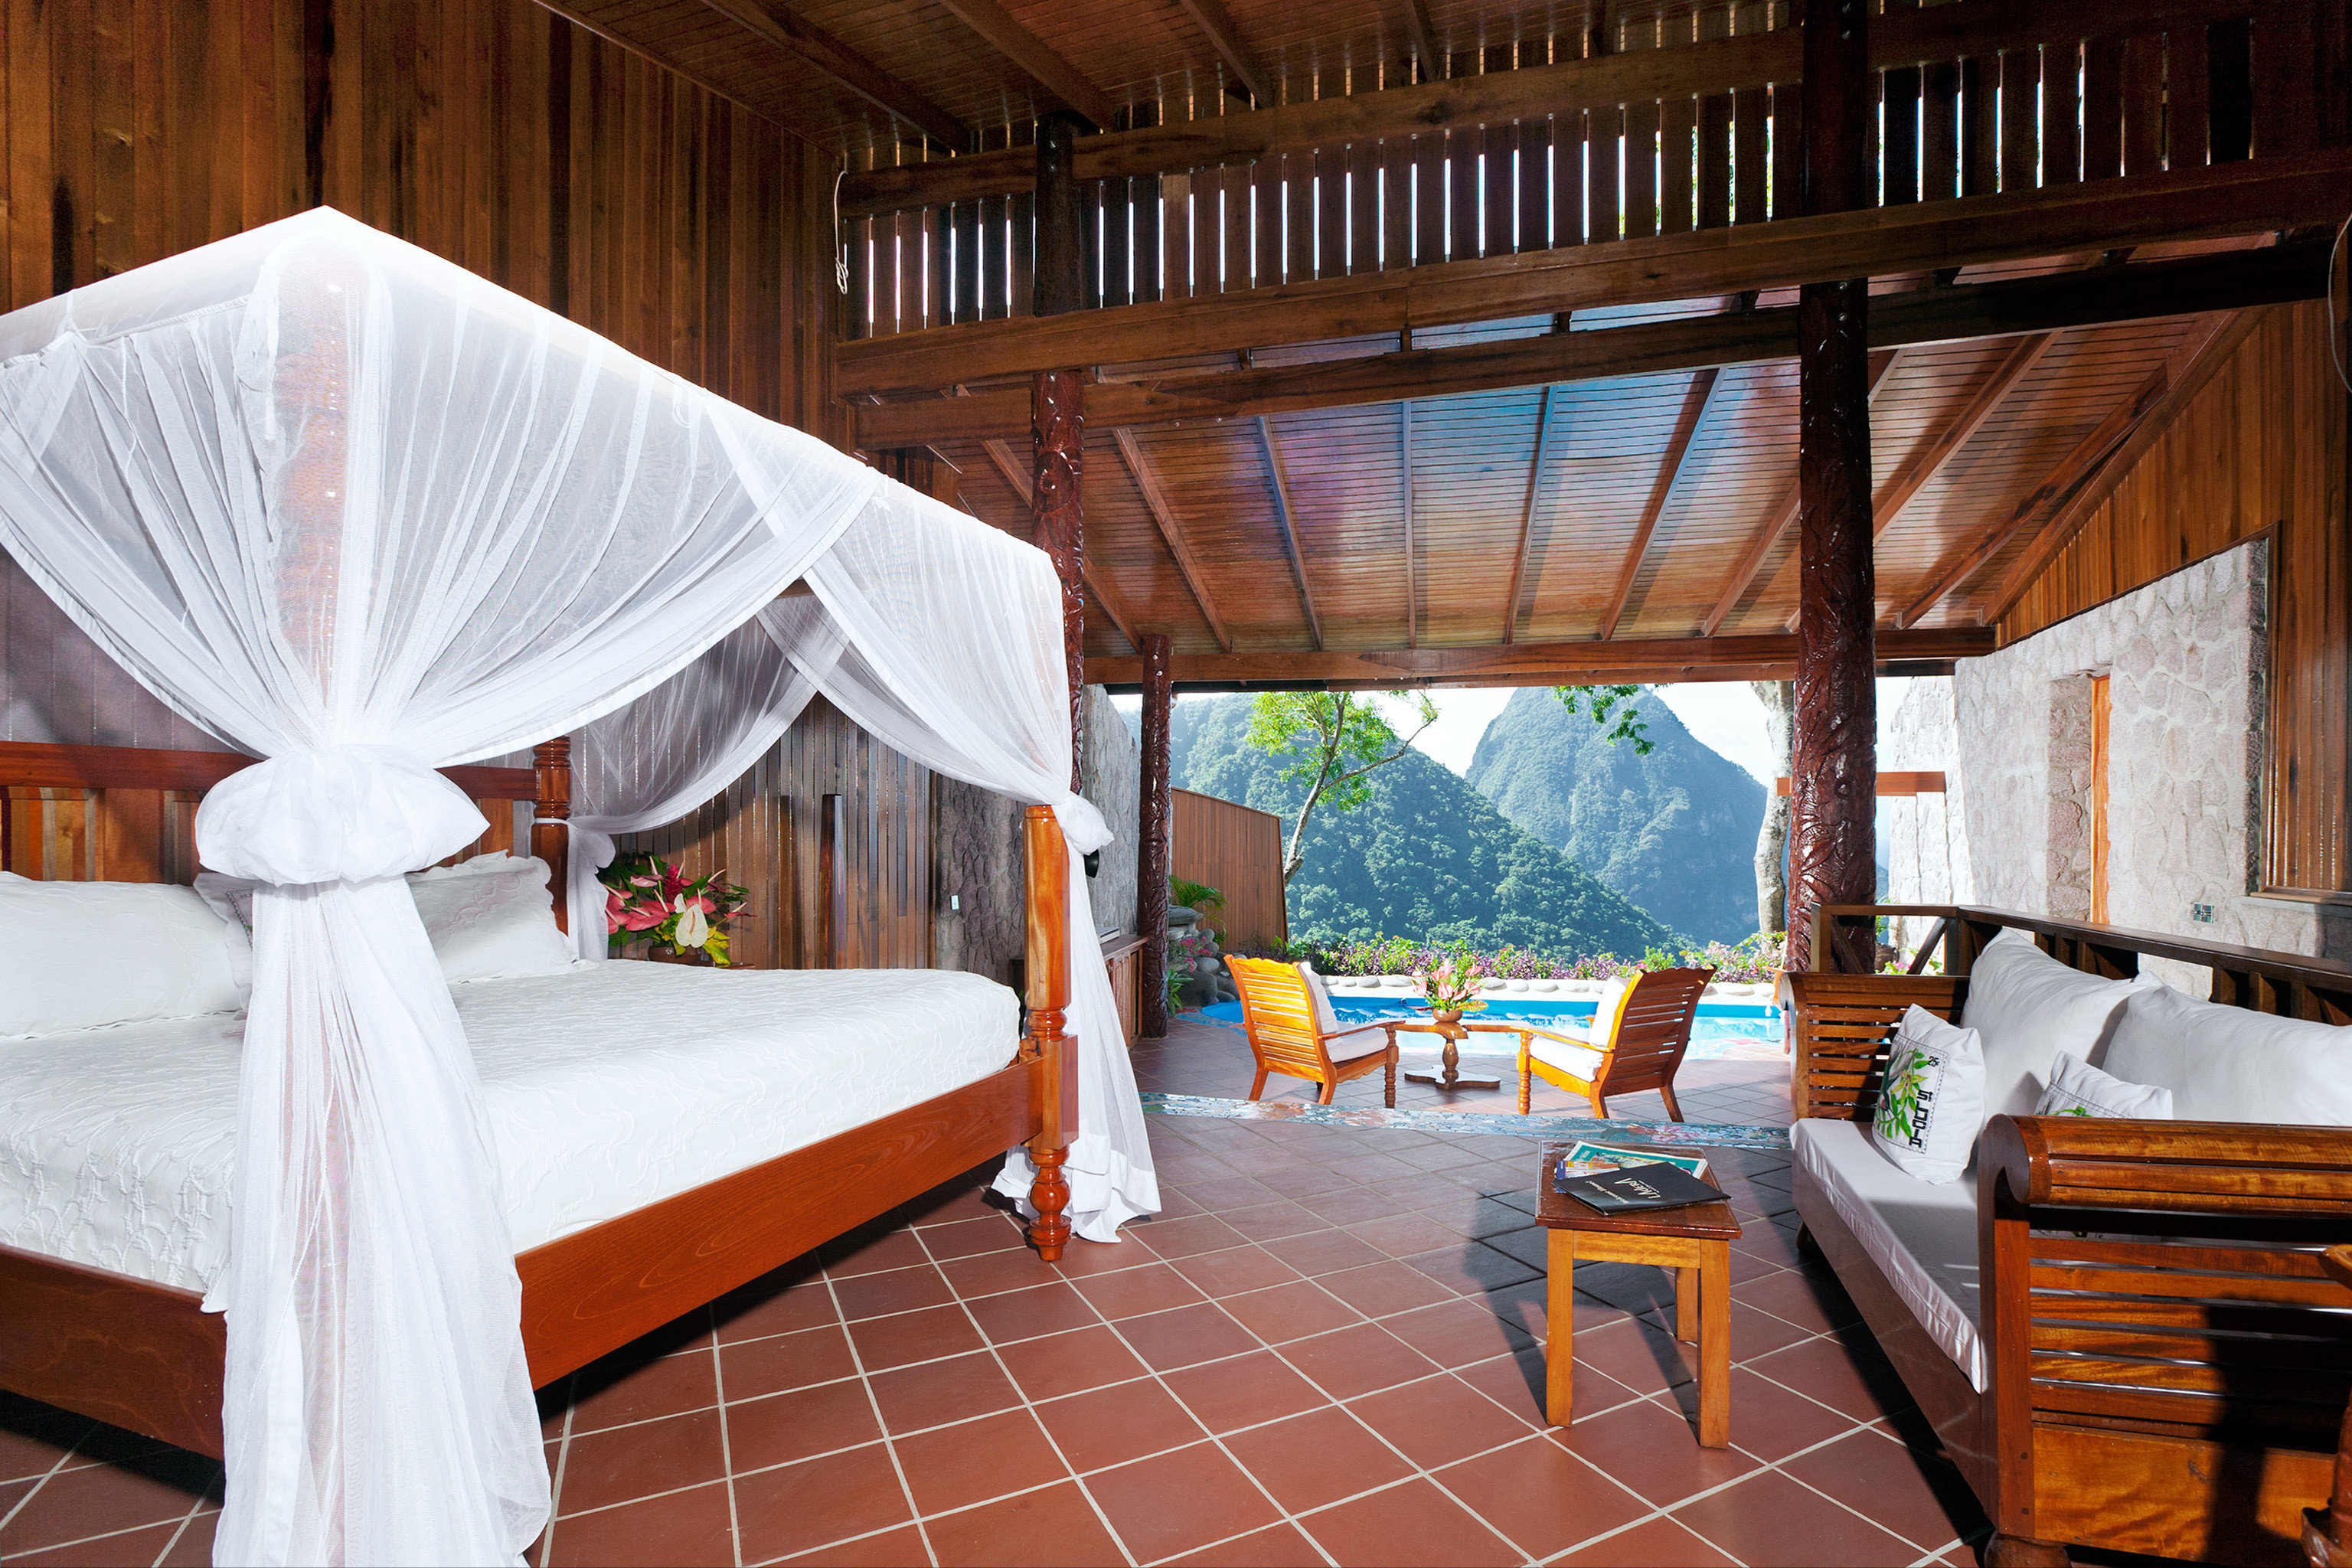 Adult-only Bedroom Honeymoon Hotels Luxury Luxury Travel Resort Romance property wooden Villa cottage Suite